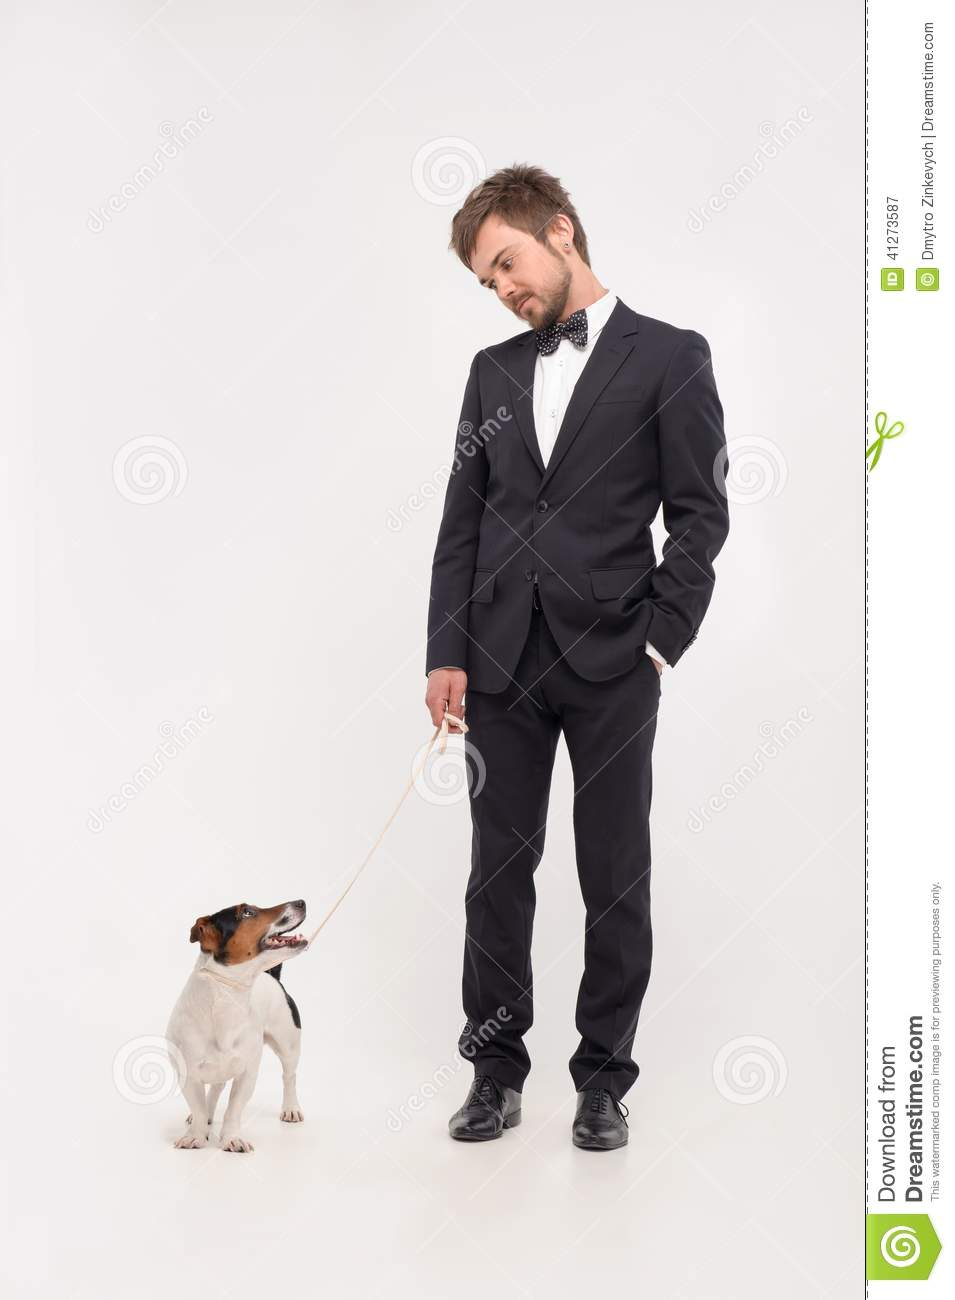 Man On Dog : Isolated portrait of owner with his dog stock photo